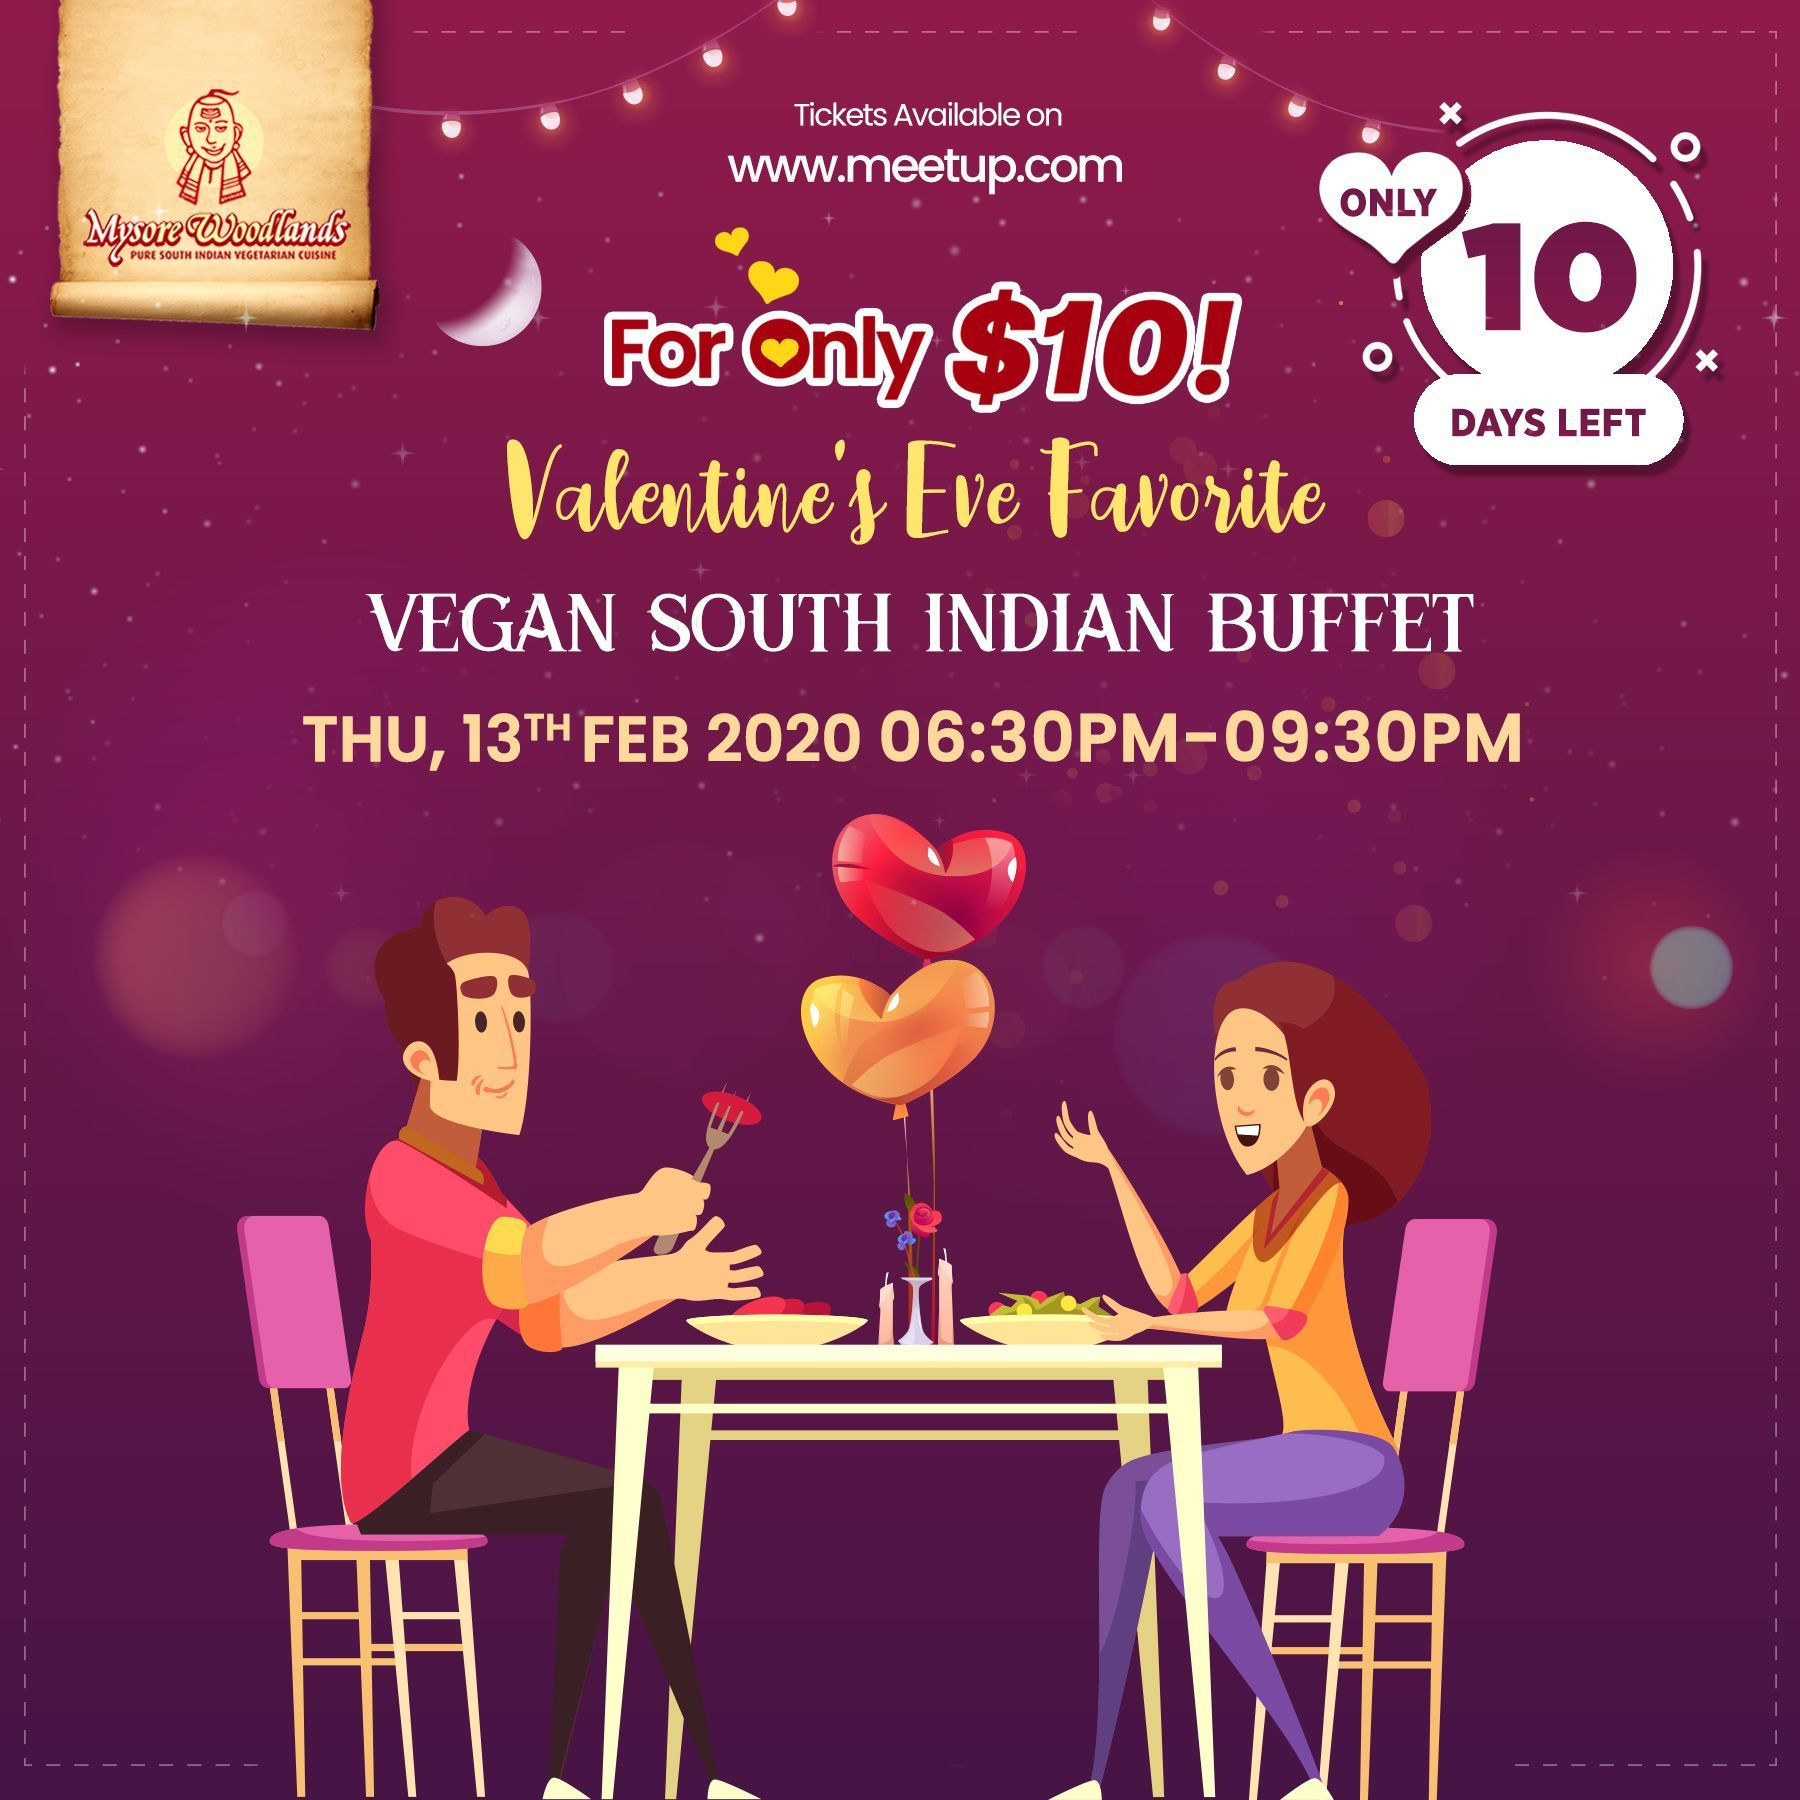 Valentine's Eve Favorite VEGAN South Indian Buffet